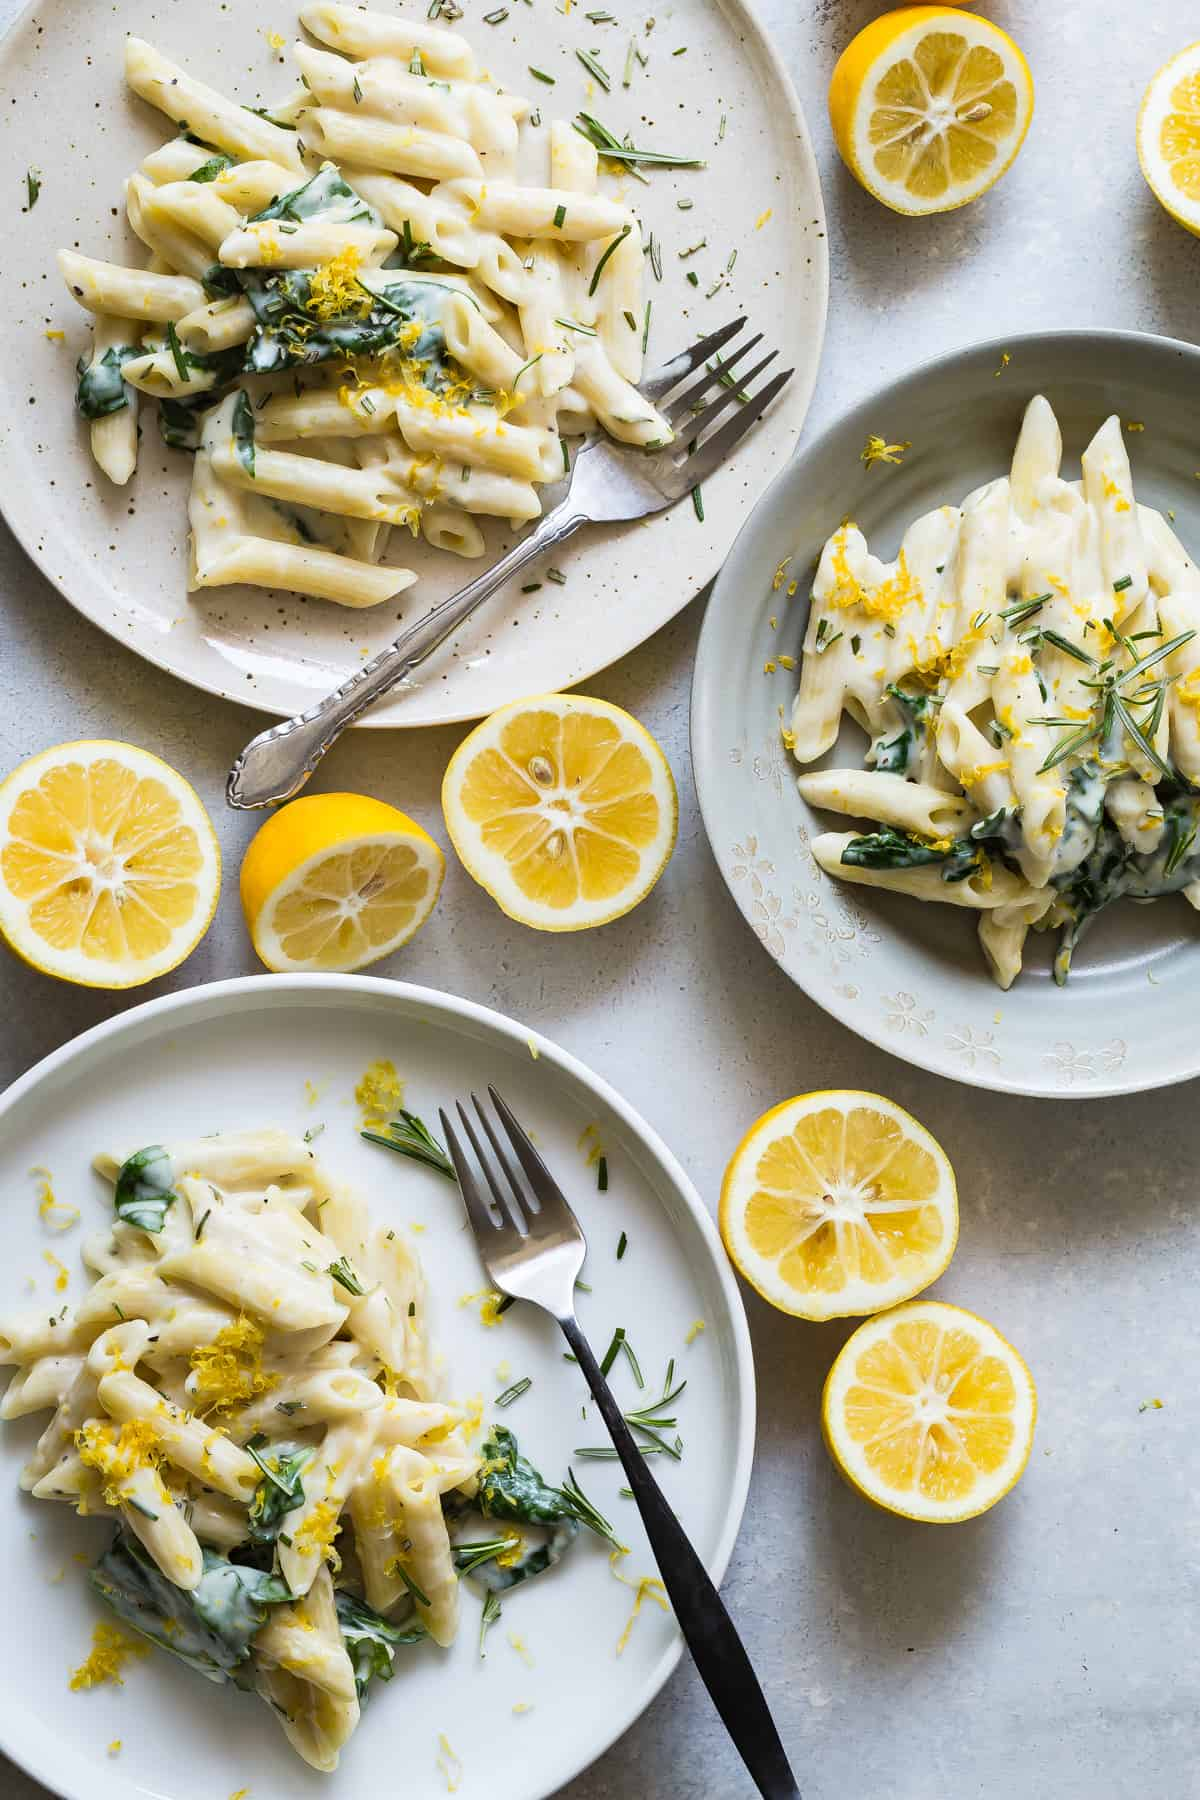 Creamy and delicious penne pasta in a goat cheese white sauce.